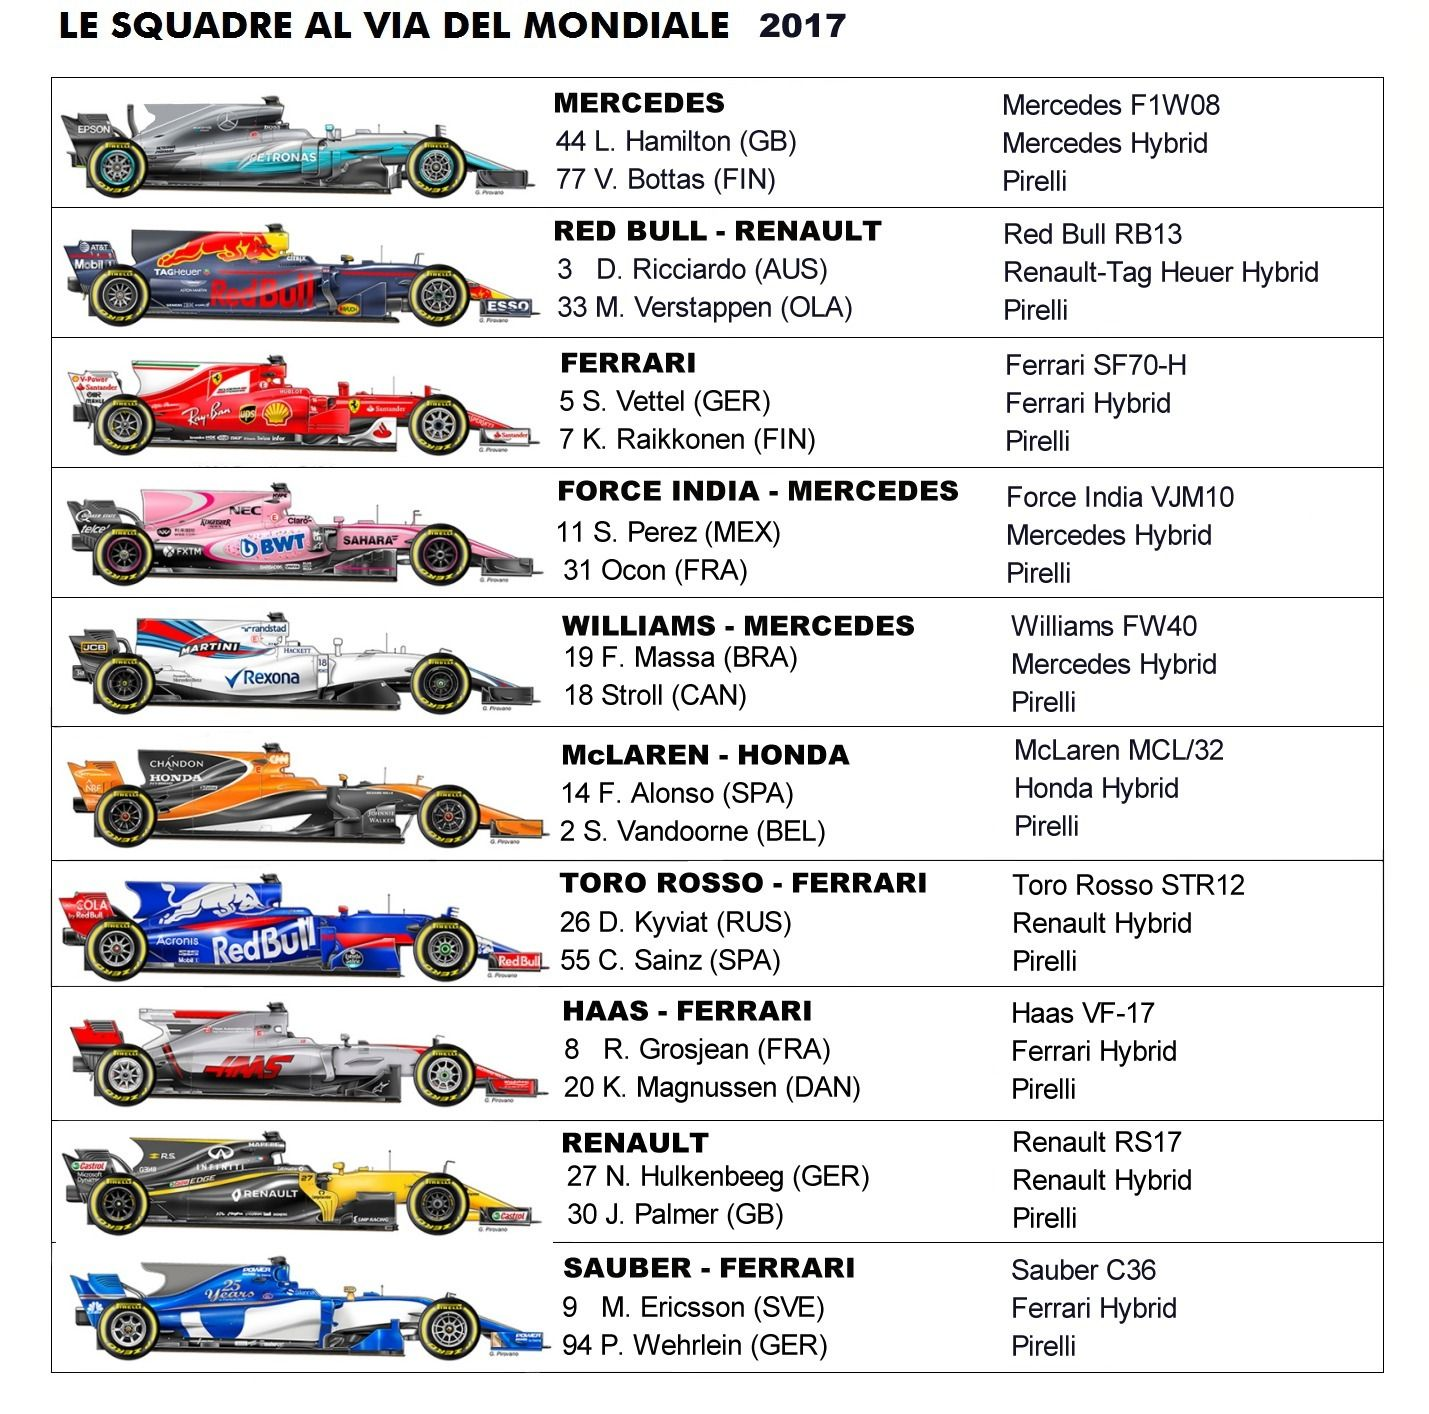 Formula One 2019 season: All the cars and drivers